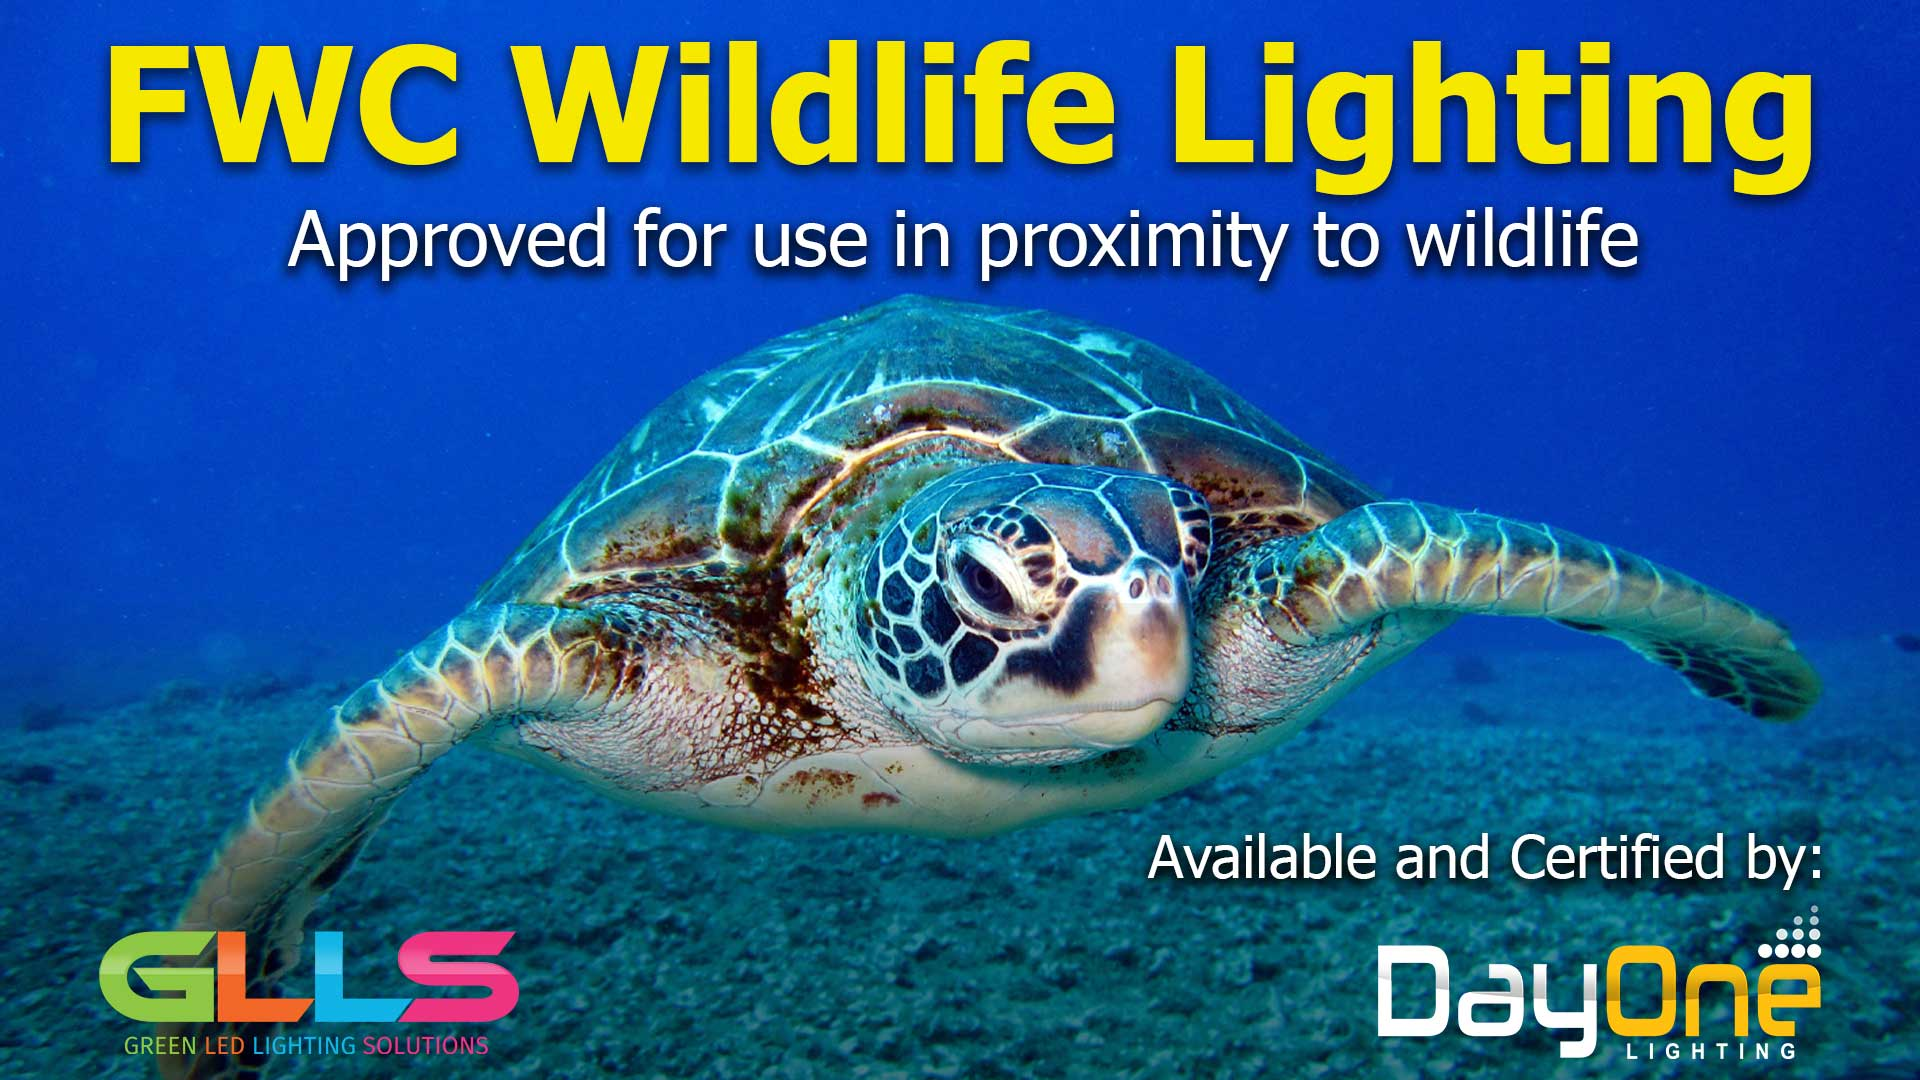 FWC Wildlife Lighting